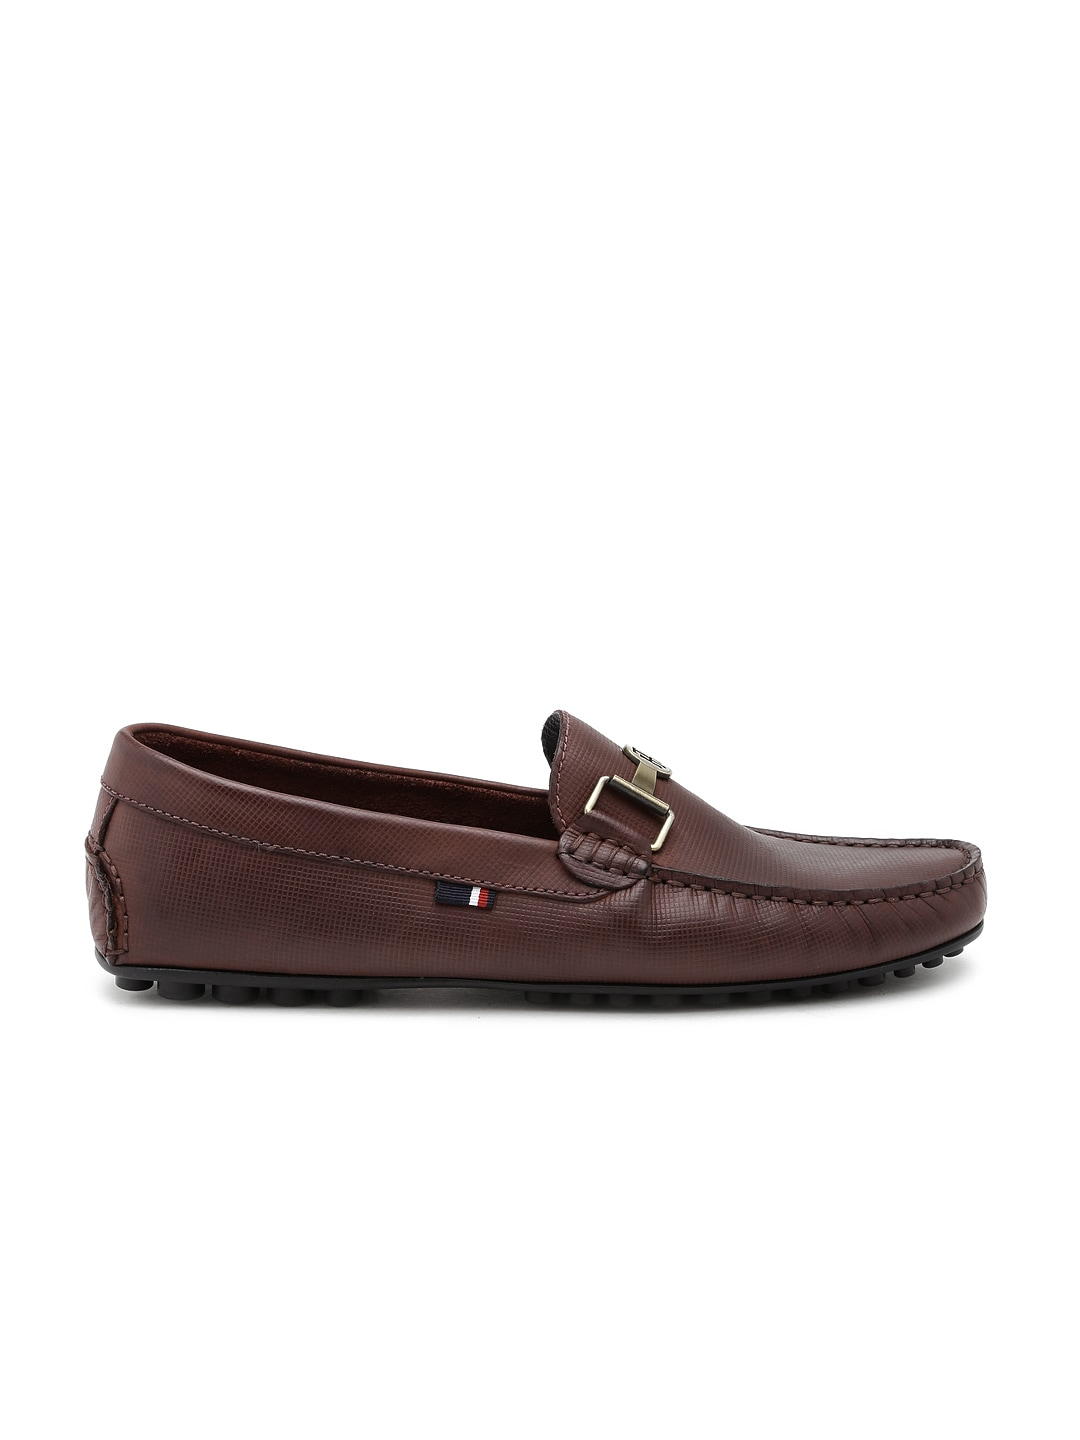 157b1d5b1 Tommy hilfiger a6amf046 Men Brown Leather Loafers - Best Price in ...